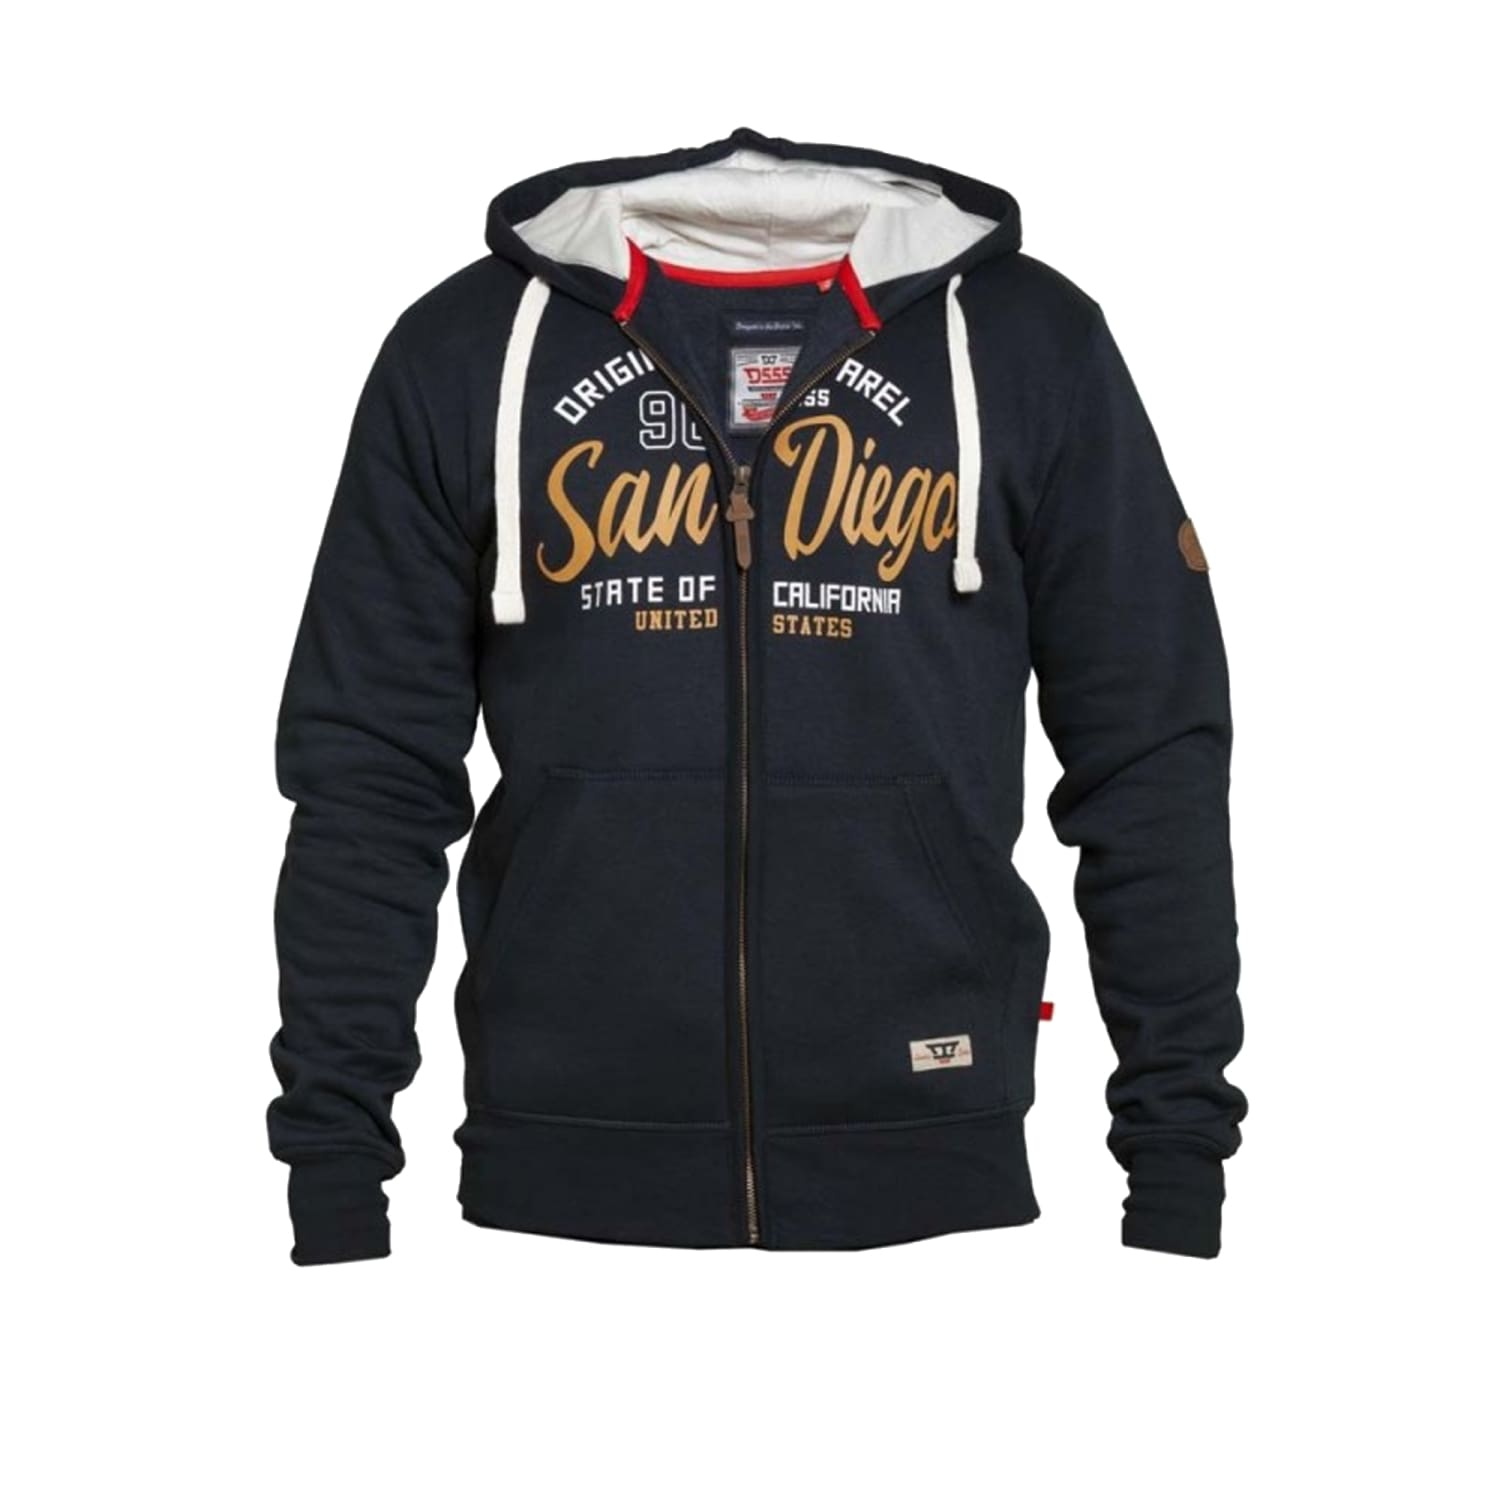 D555 Full Zip Hoody - KS60461 - Stockton - Navy 1